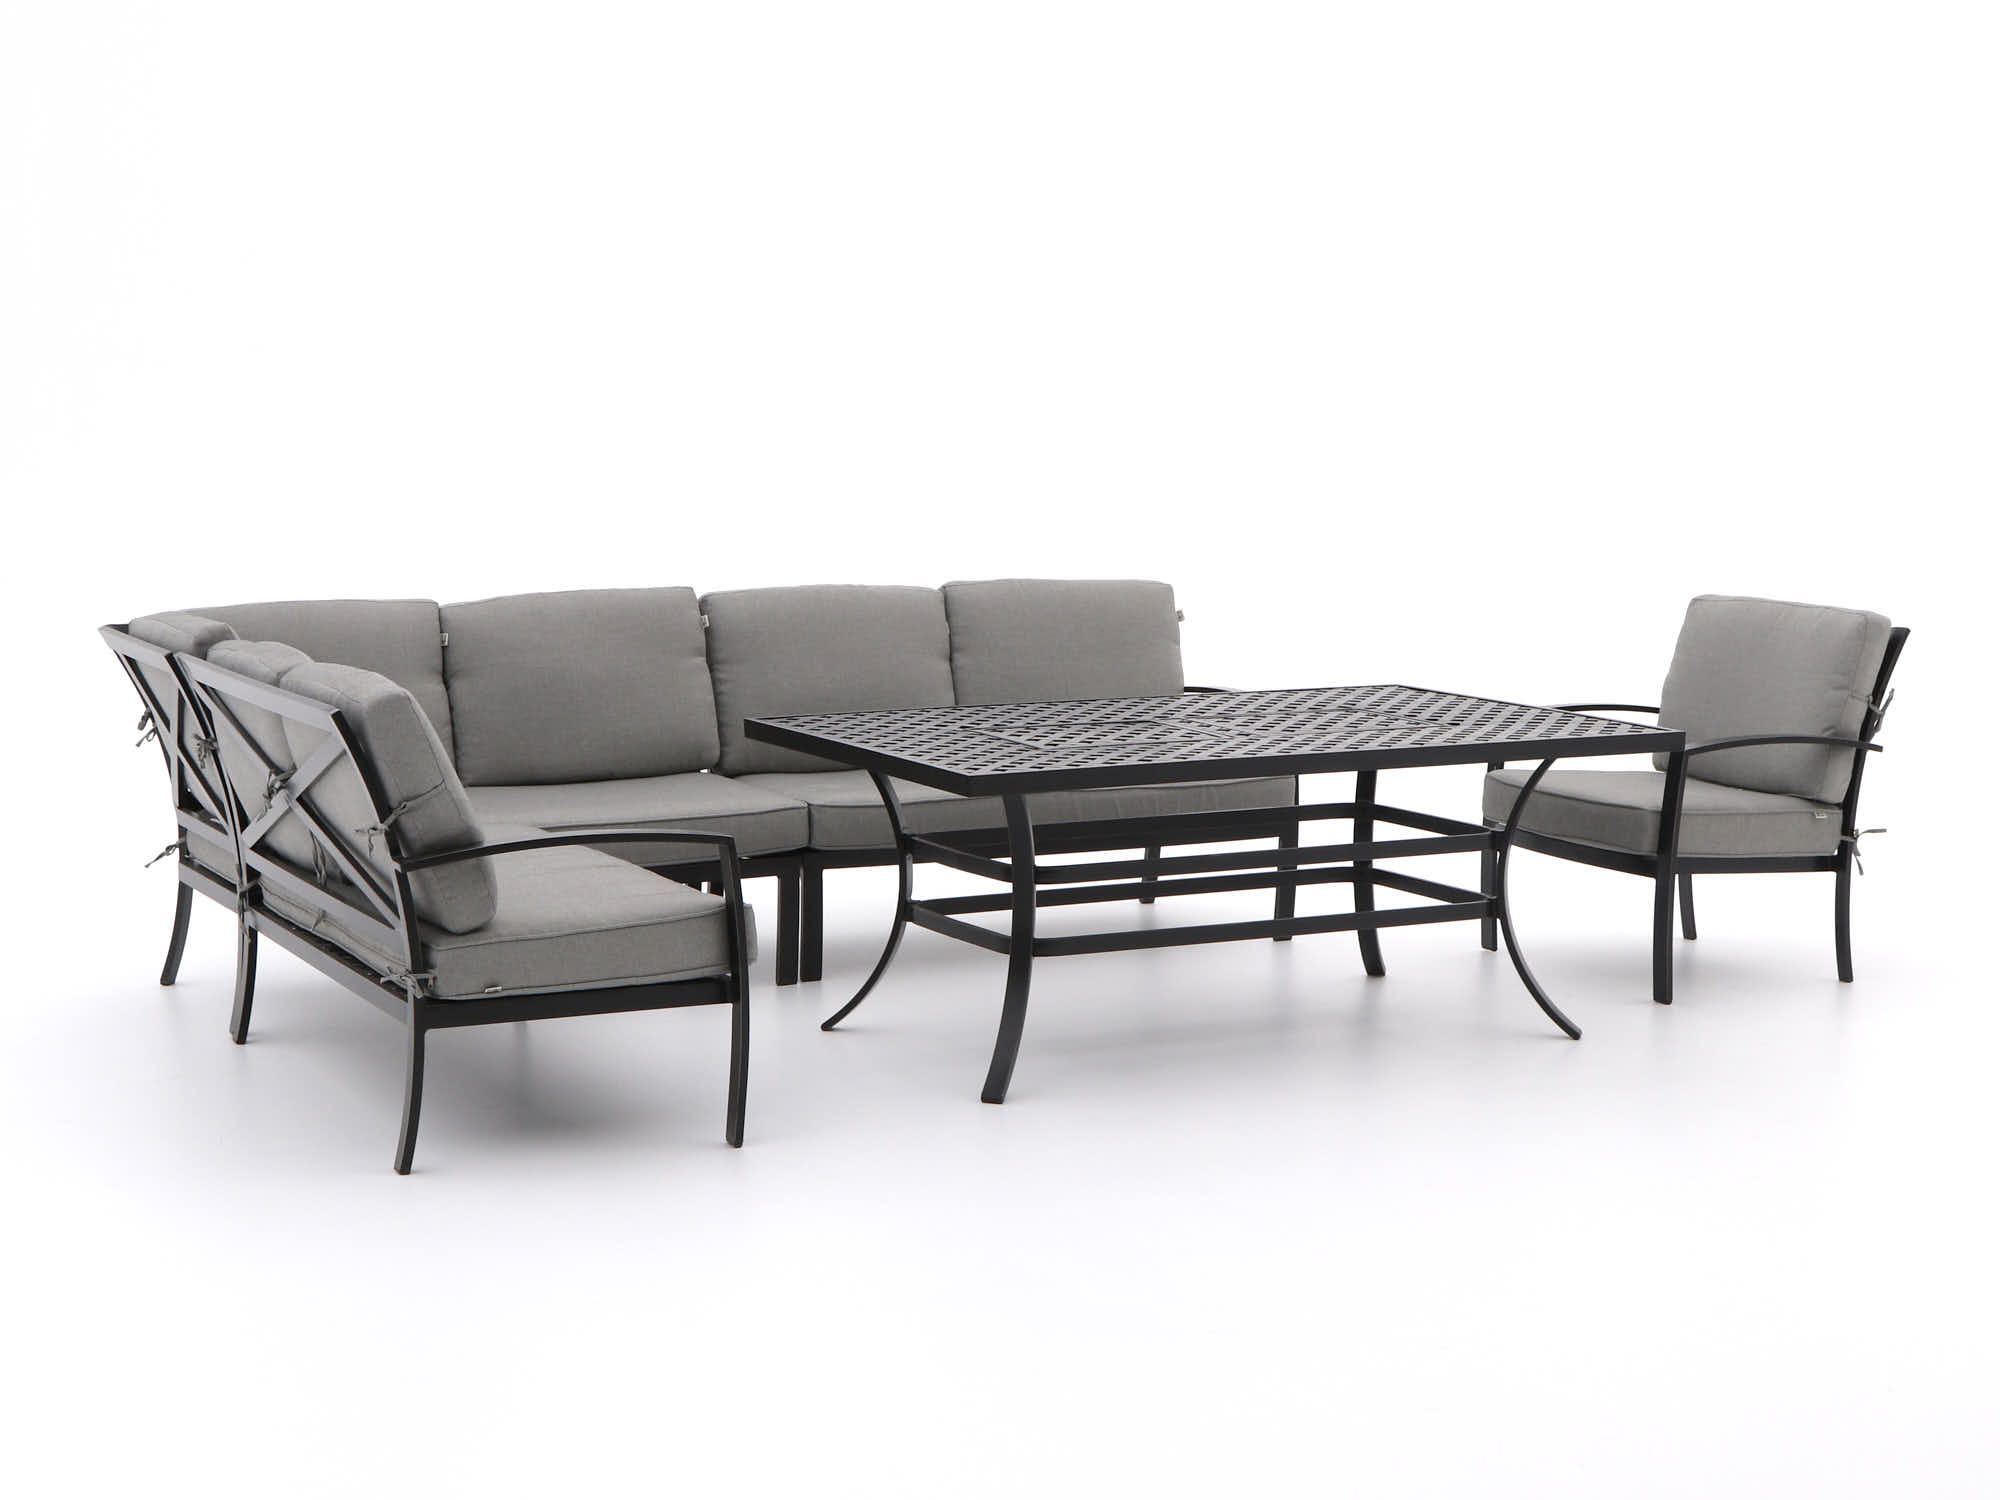 Kees Smit Loungeset.Hartman New Jamie Oliver Dining Loungeset 5 Delig Loungeset